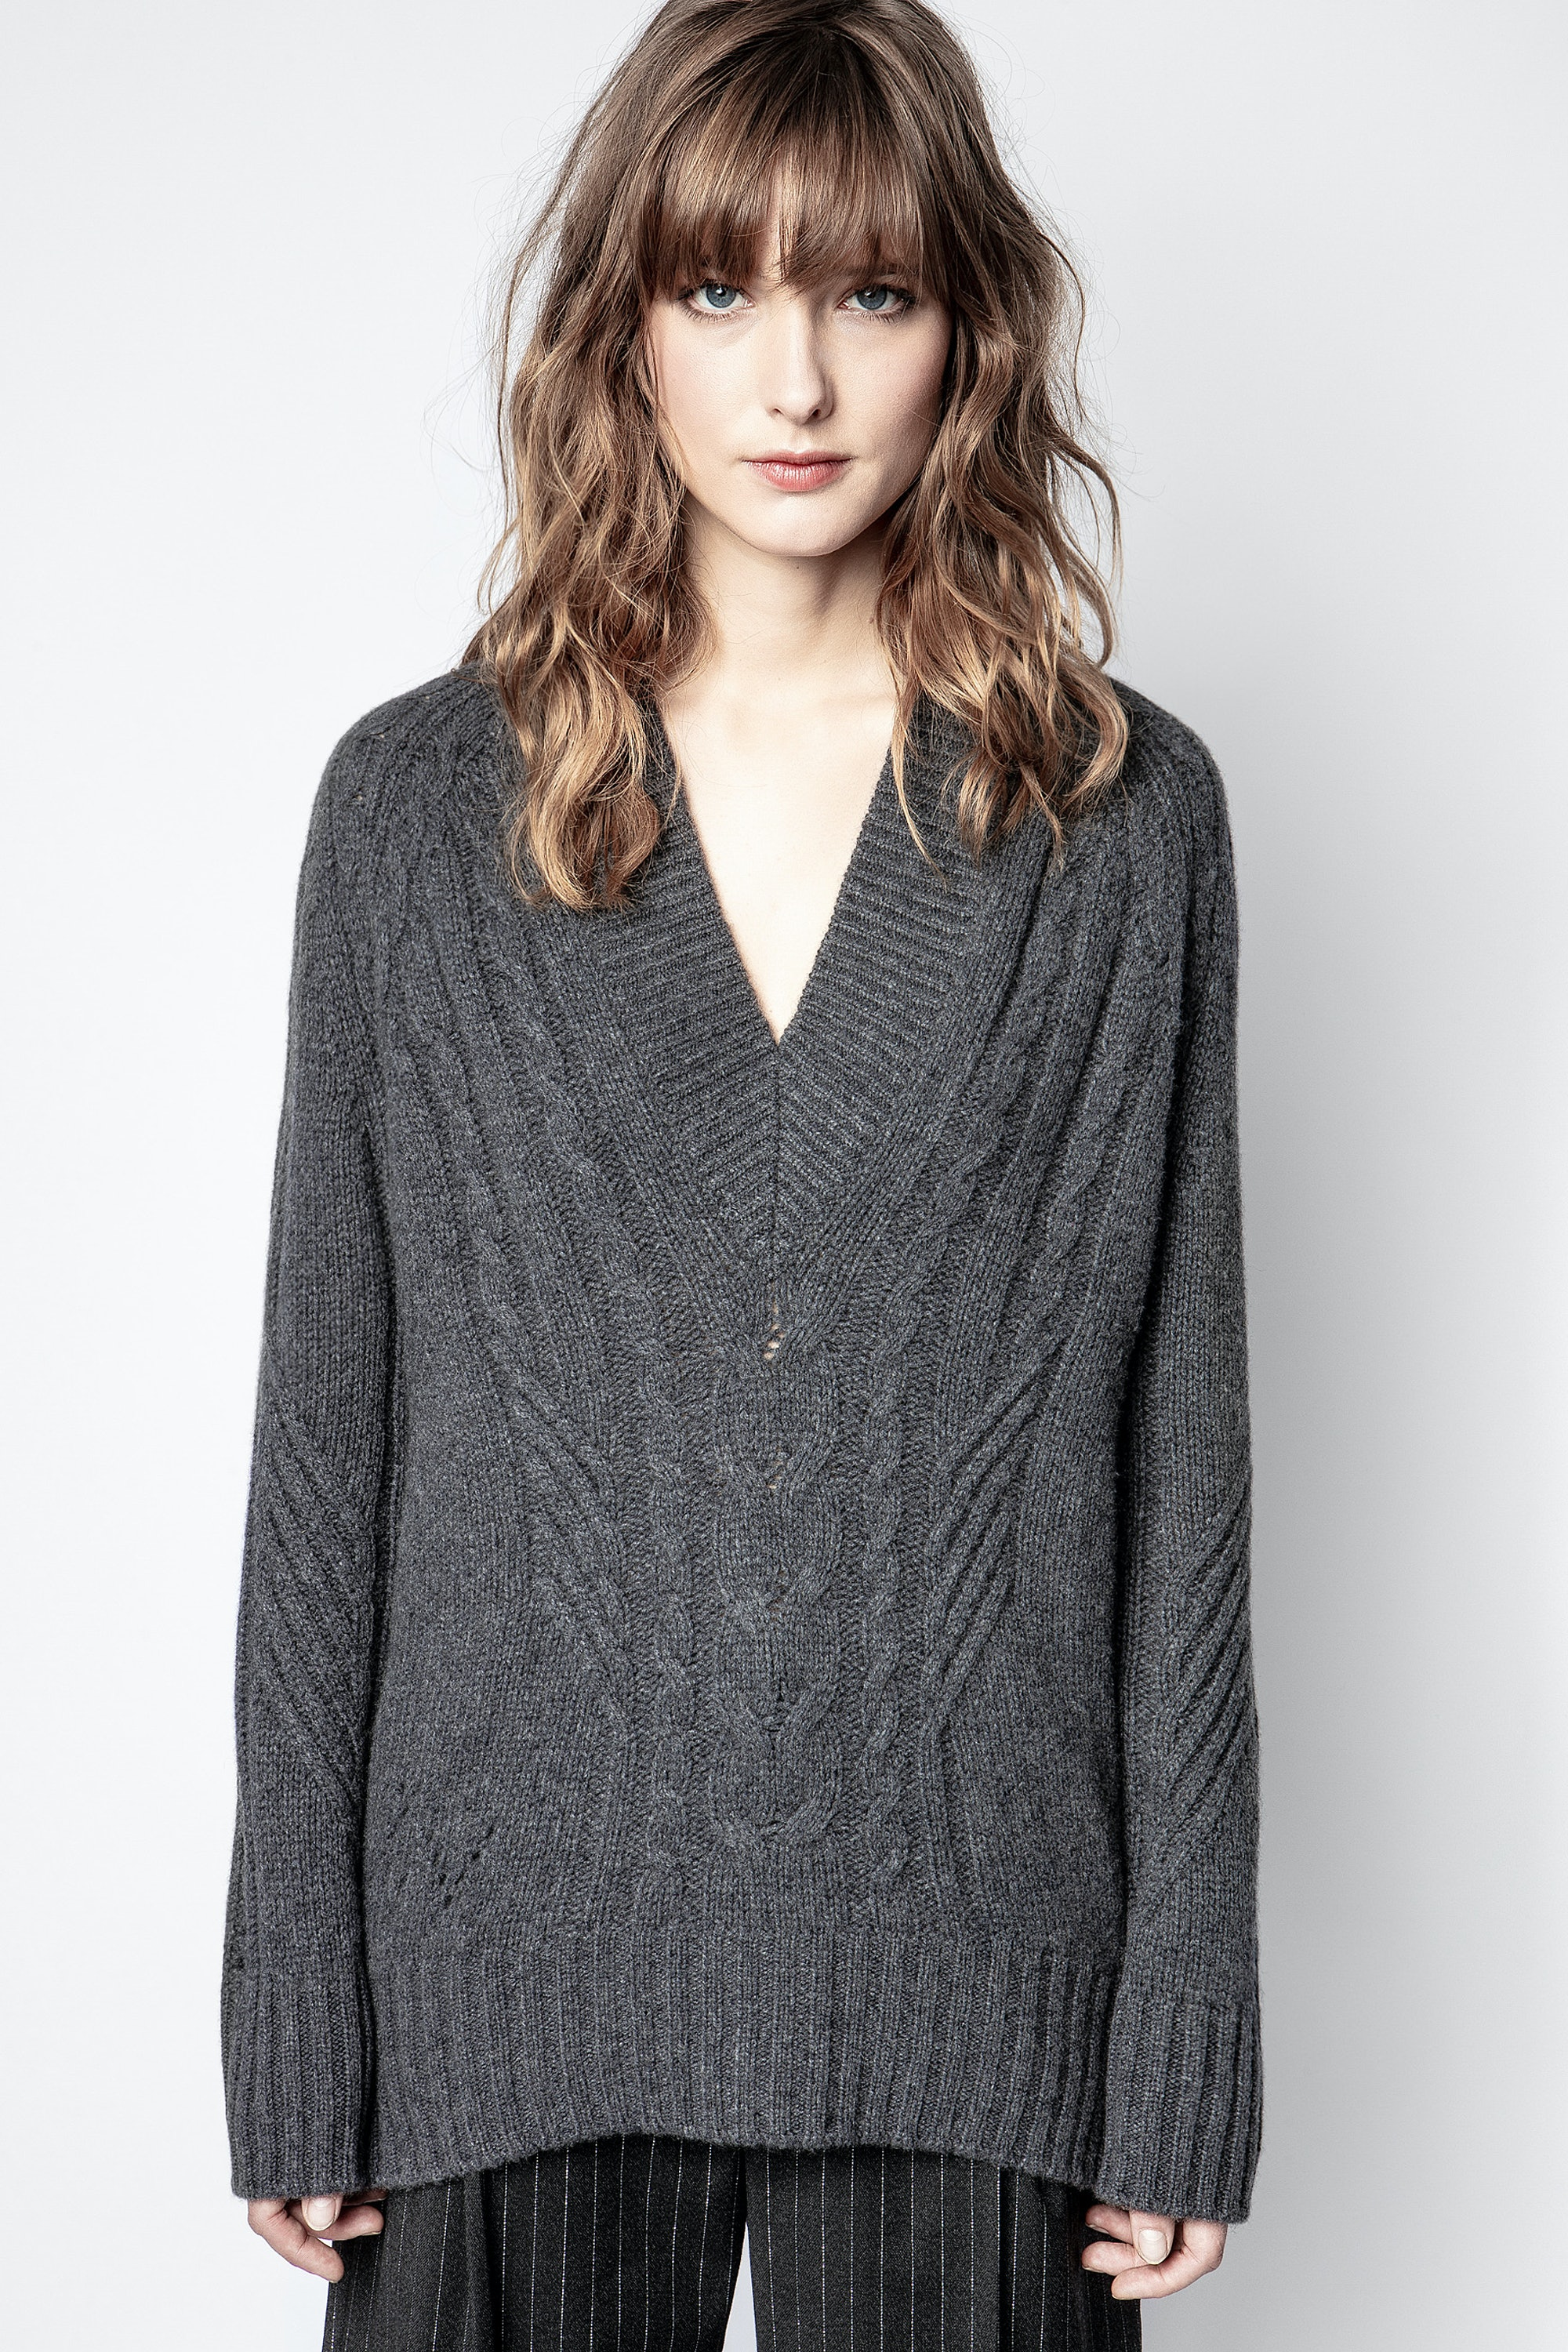 Elly Cachemire Sweater